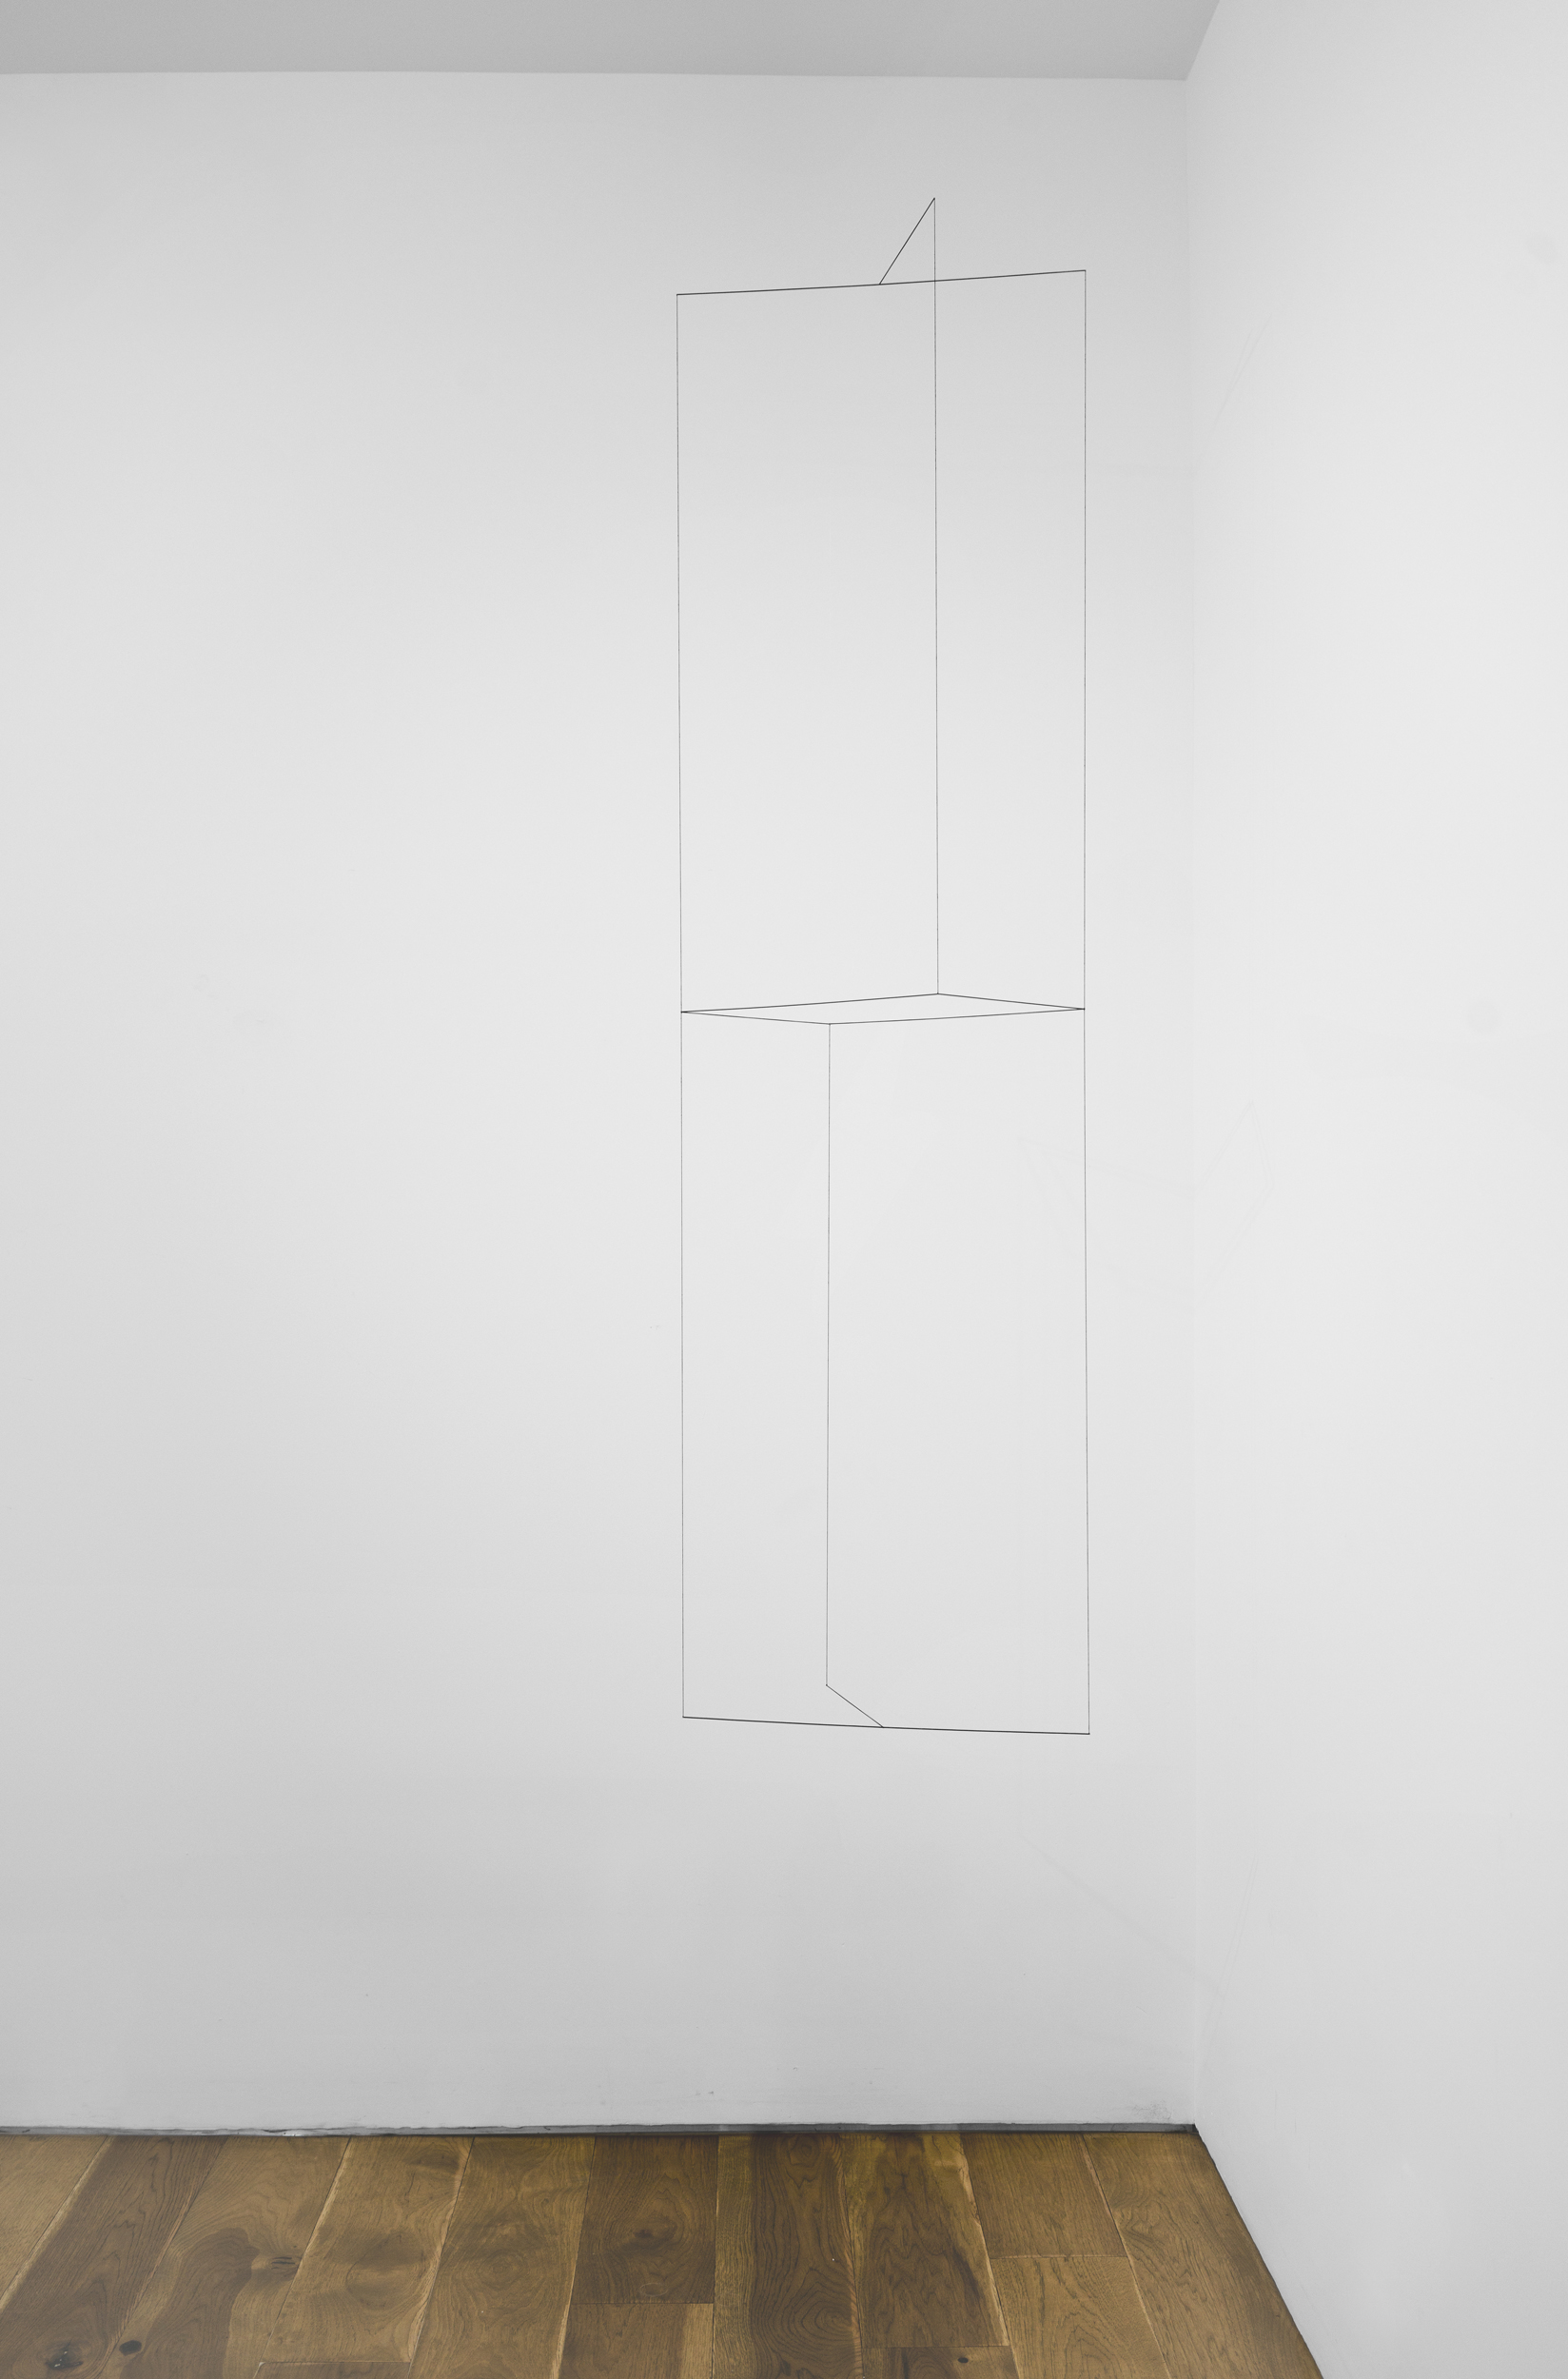 Jong Oh 2018 Metal rod, string, fishing wire, paint 69 x 16.5 x 11 in (175.3 x 41.9 x 27.9 cm) 2018 Marc Straus Gallery